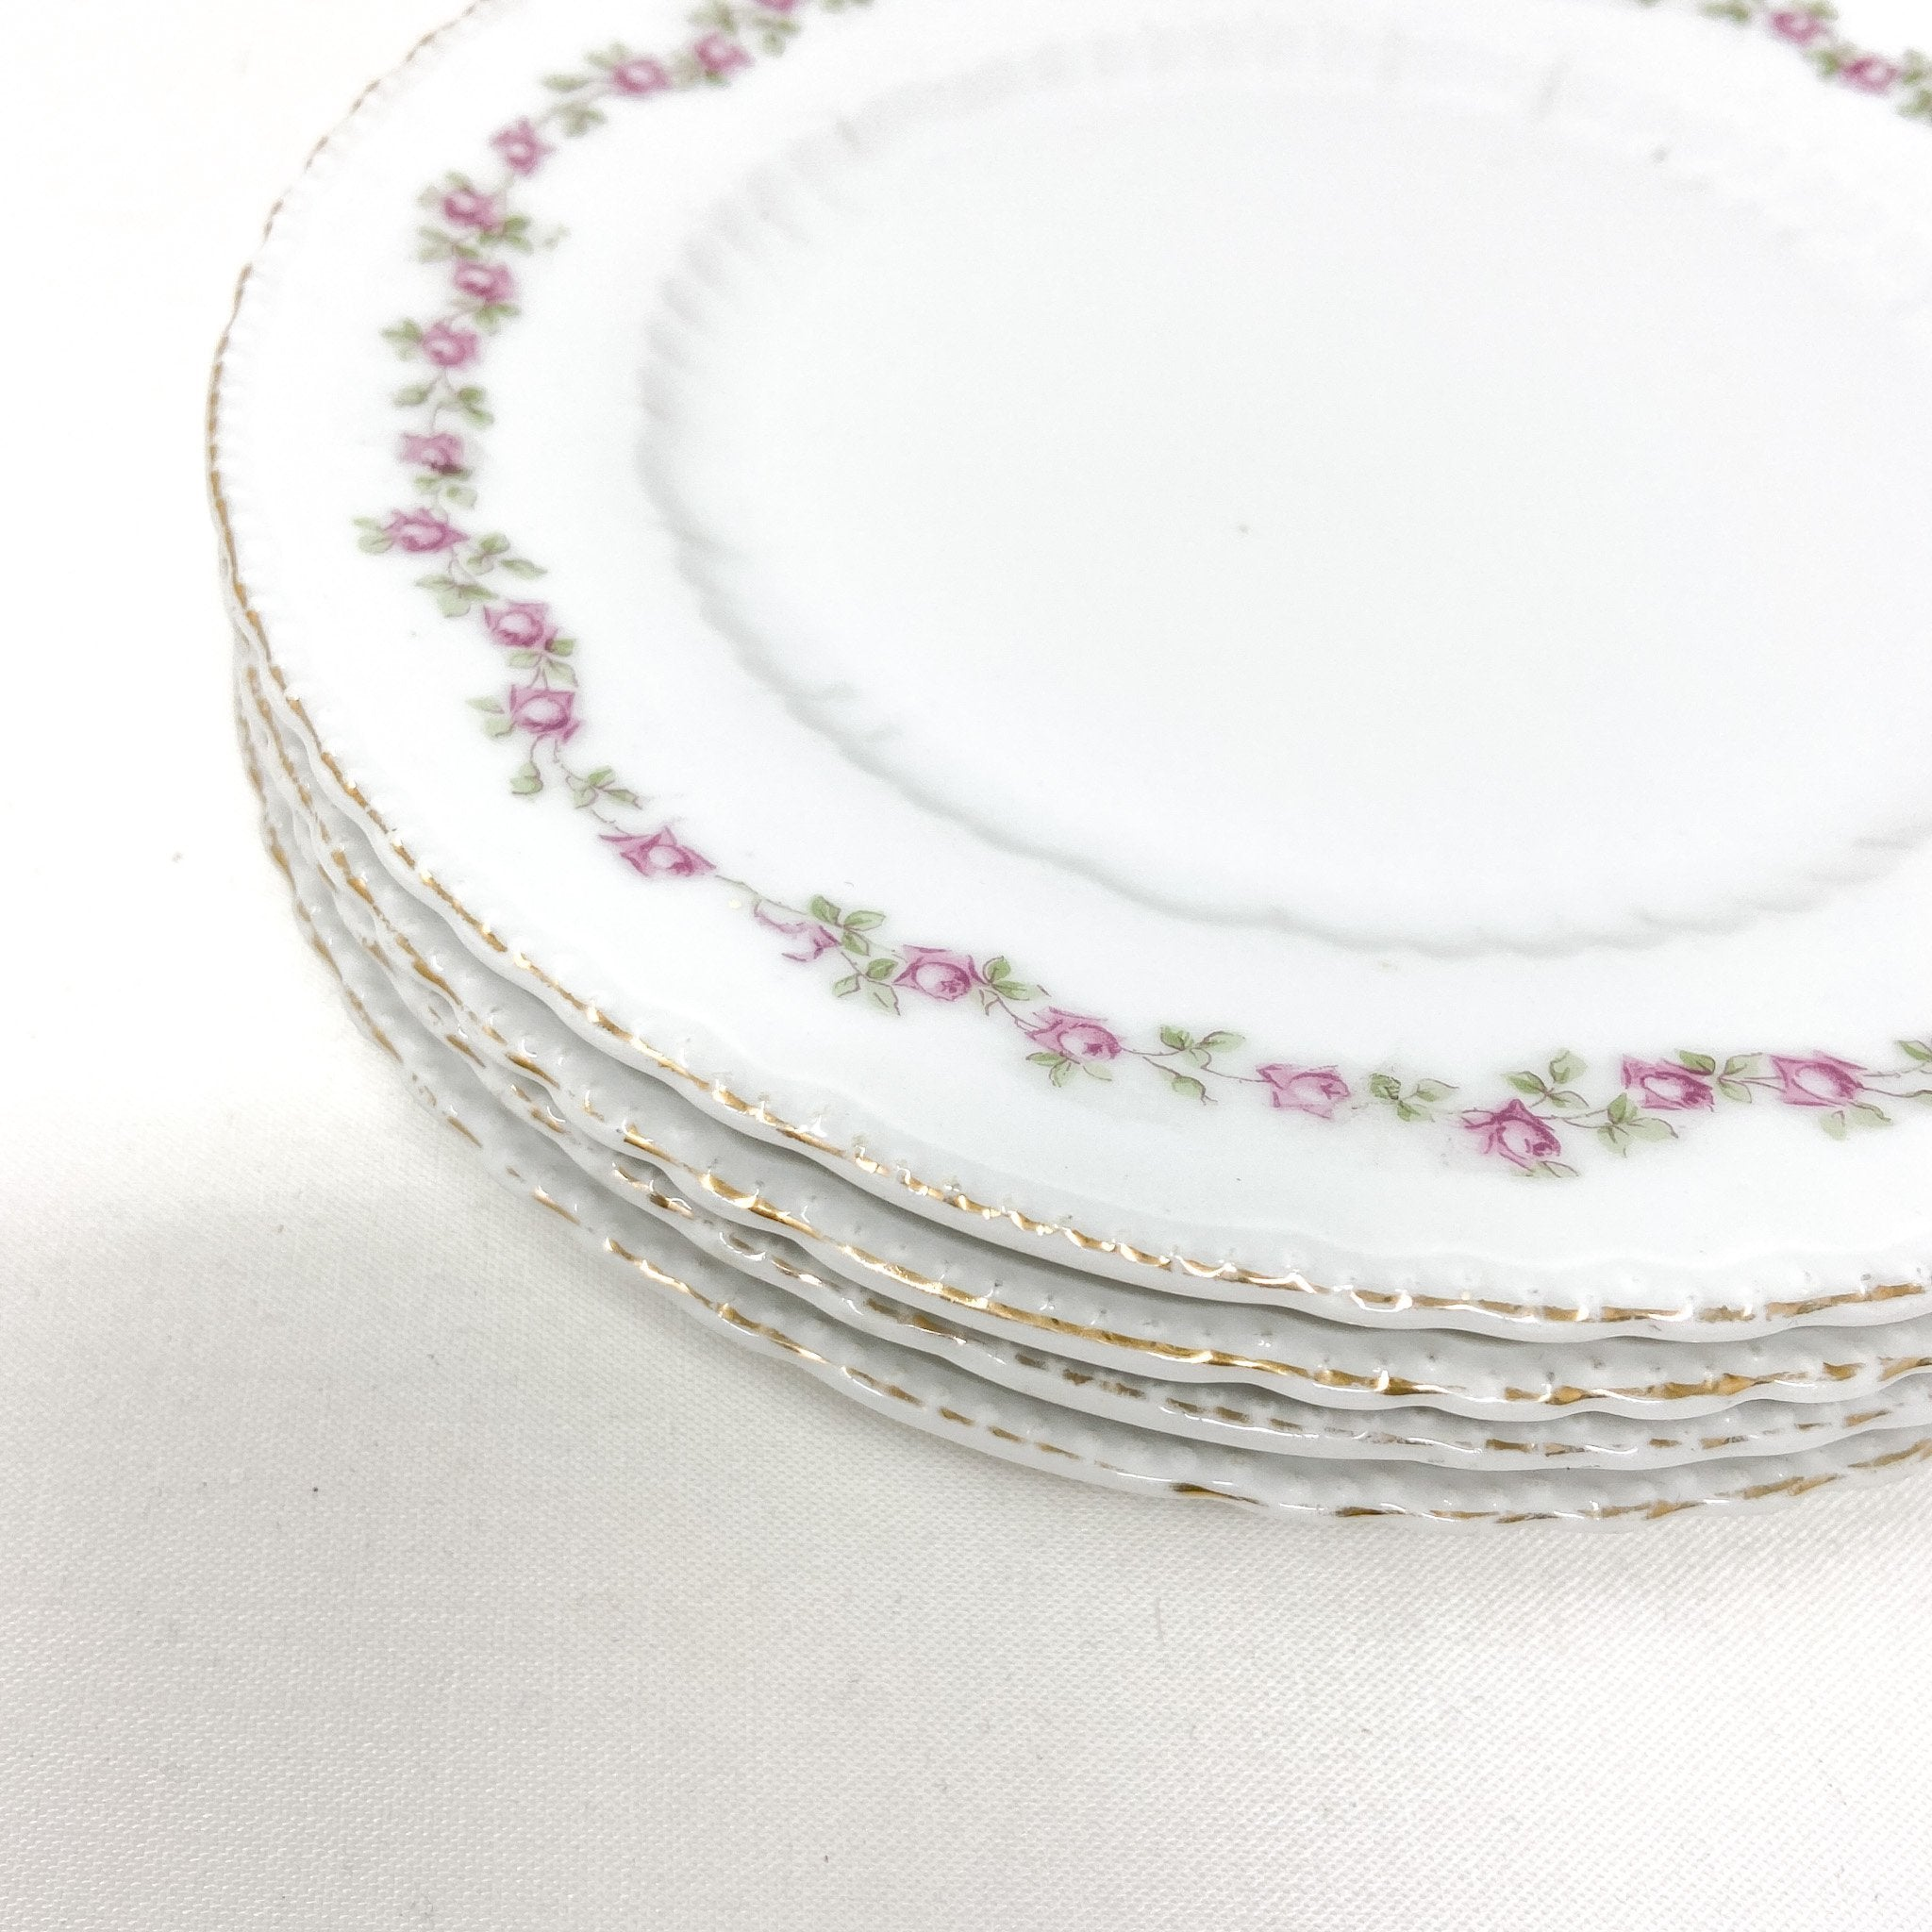 gilding faded on vintage china plates with rose pattern wreath - Victoria Austria - beautiful elegant white china